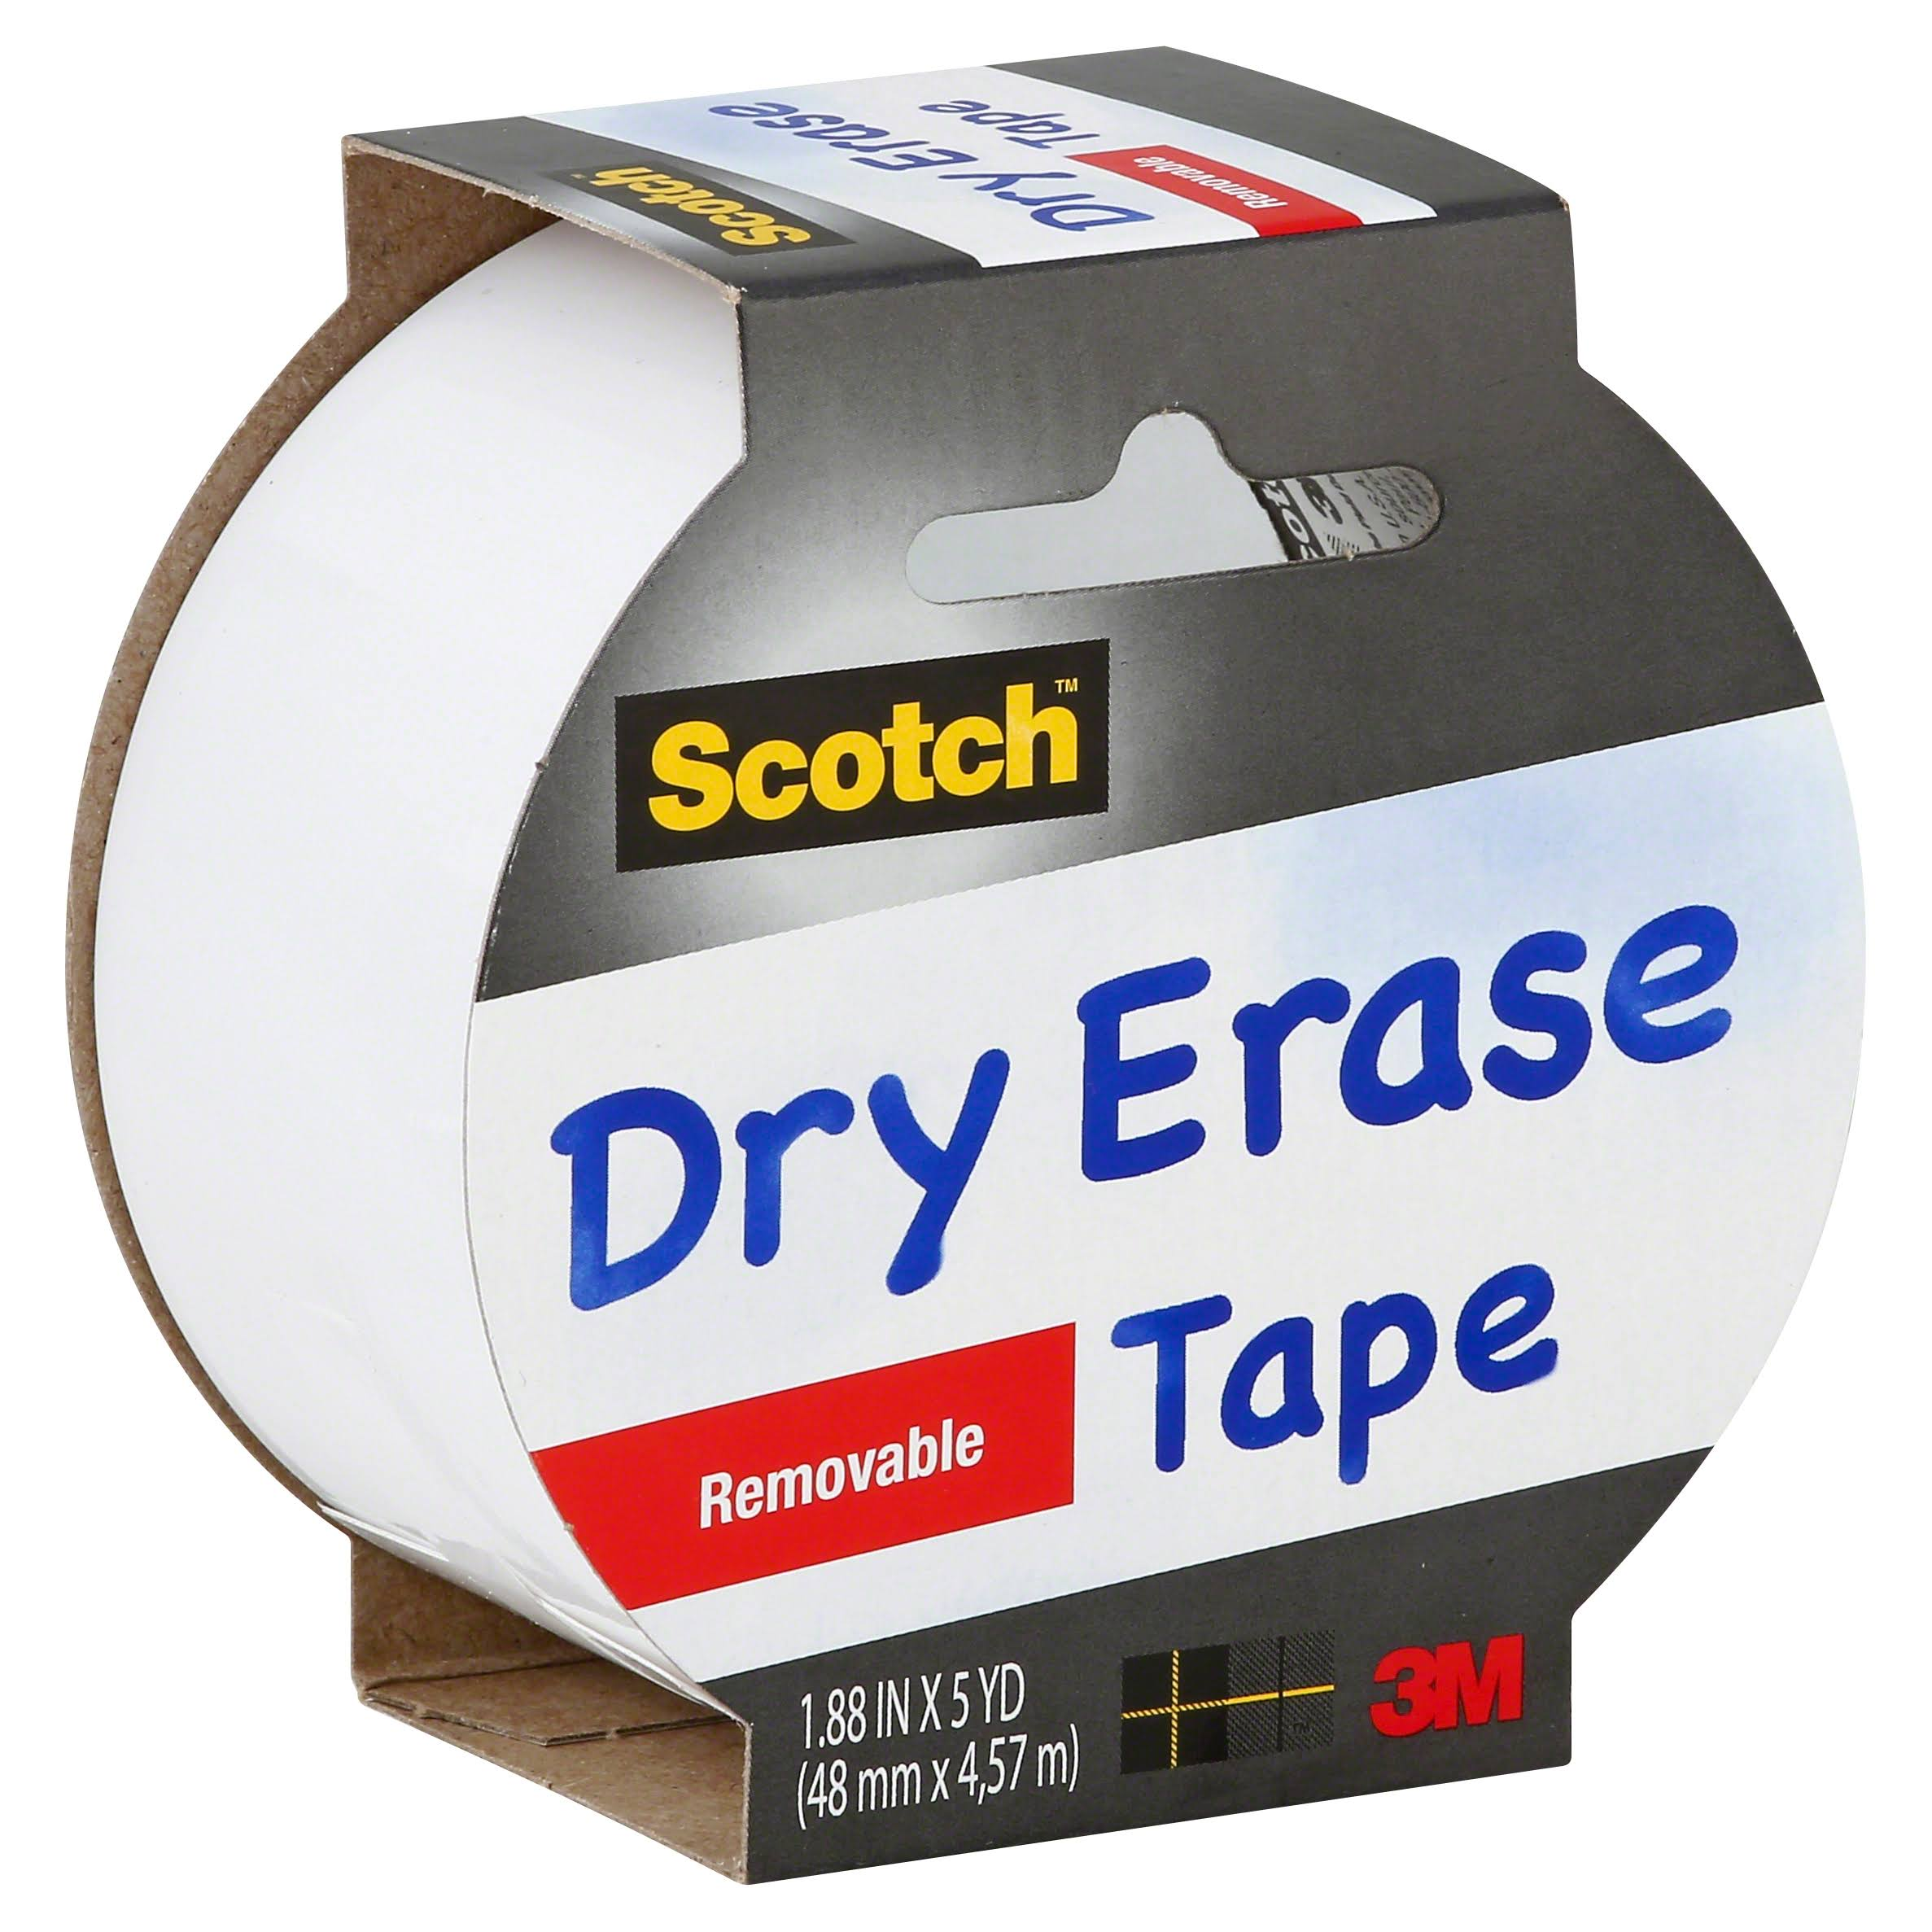 Scotch Dry Erase Tape - 1.88 in x 5 yd